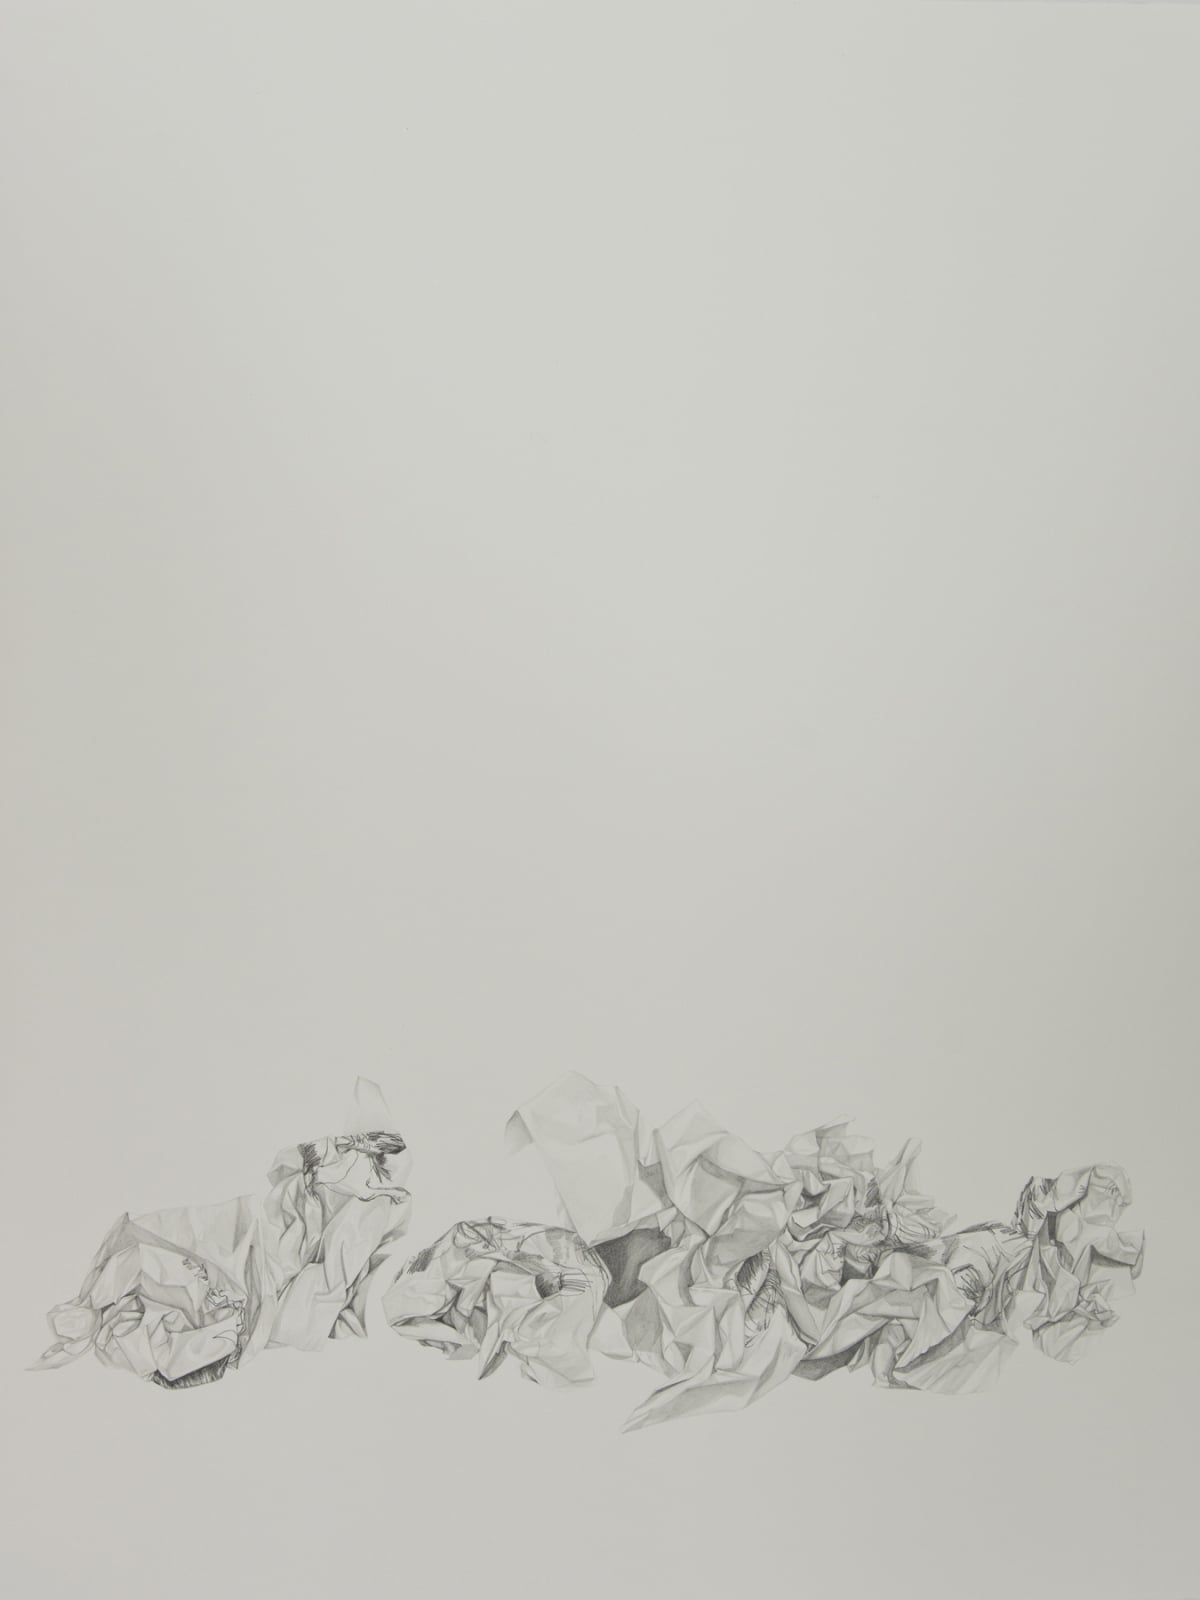 Marita Hewitt Waste Paper Series; Self Portraits, Blindfolded, 2015 Graphite on paper 45.3 x 34.3 in 115 x 87 cm